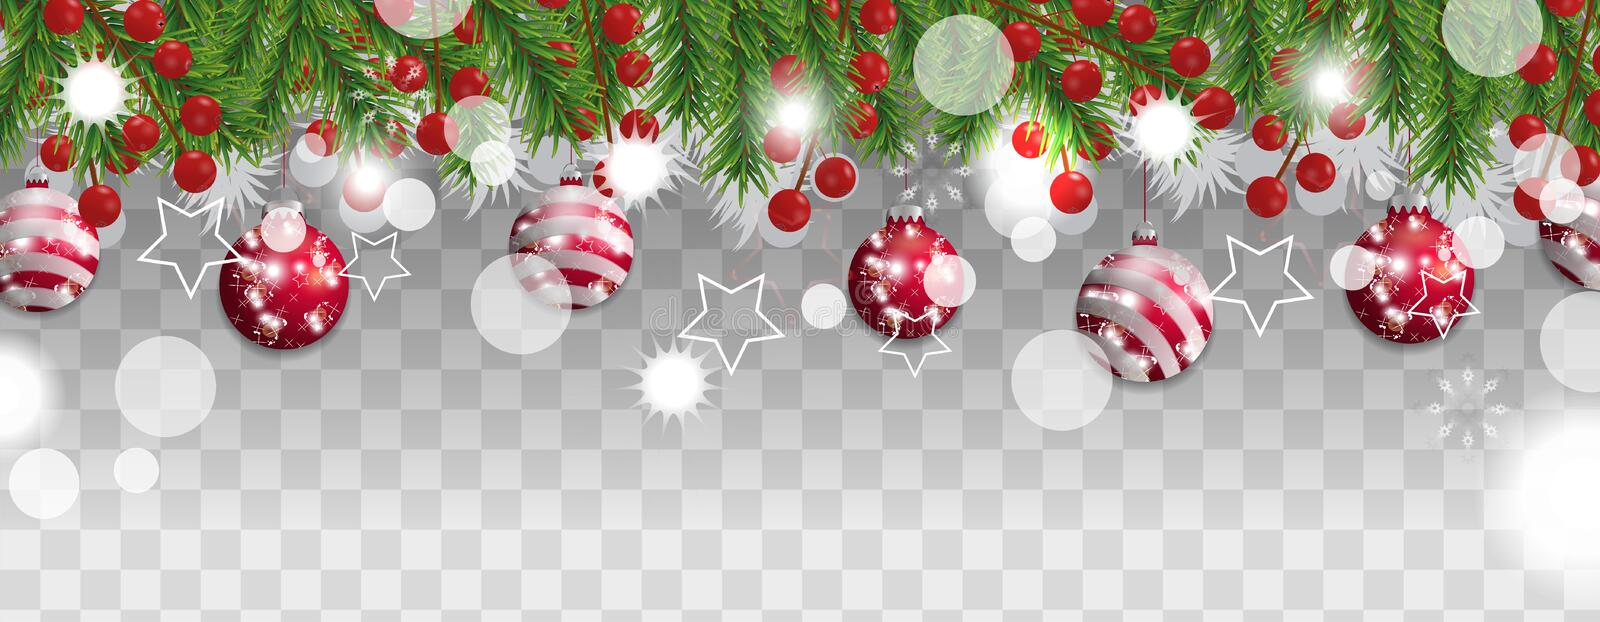 Christmas and happy New Year border of Christmas tree branches with red balls and holly berries on transparent background. Holidays decoration. Vector vector illustration